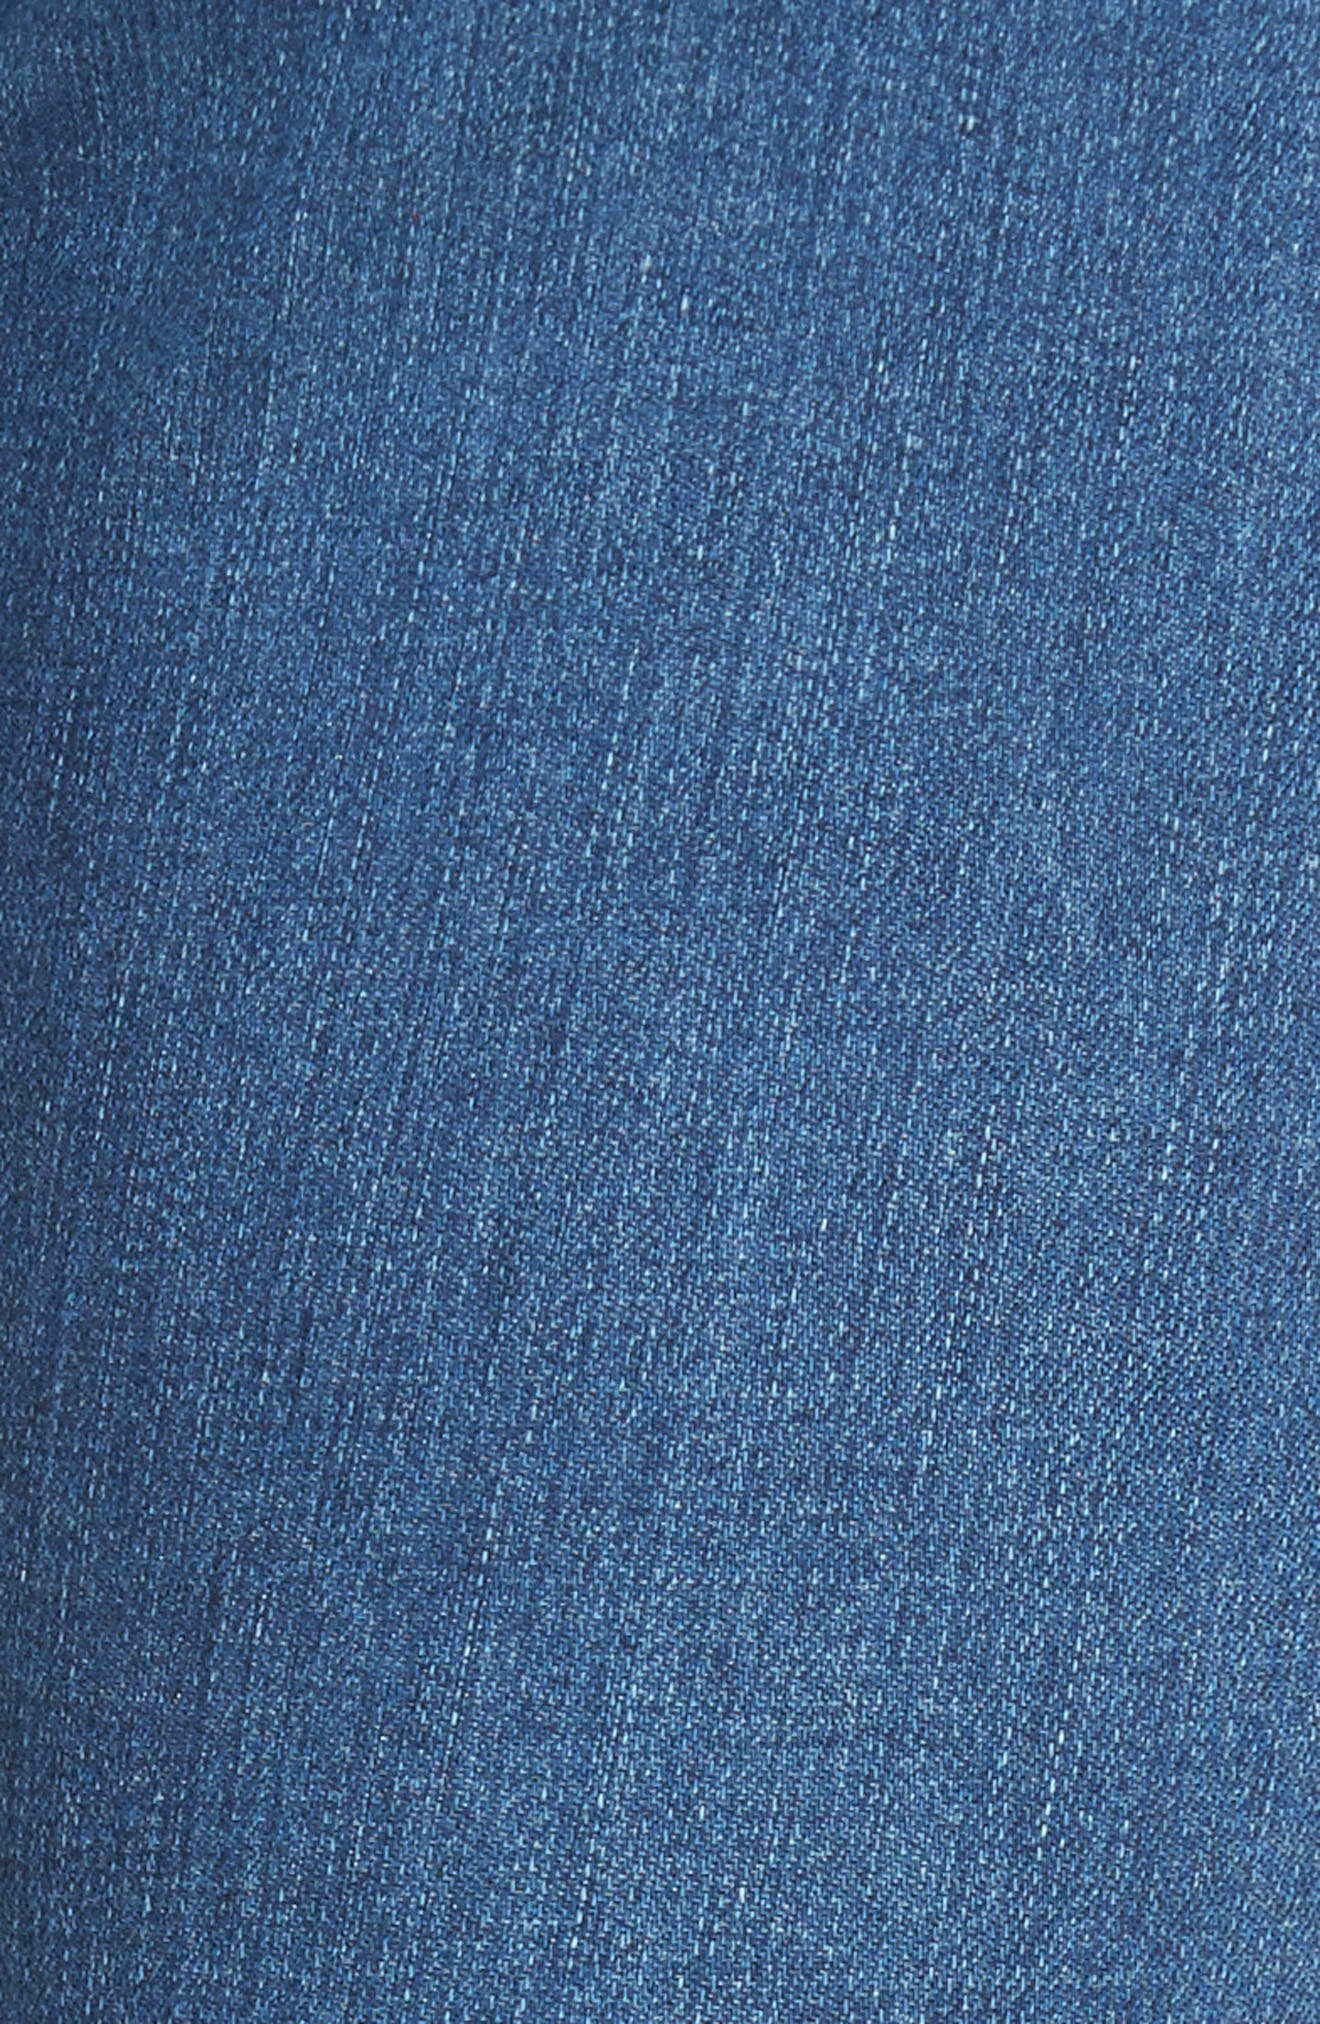 The Farrah High Waist Ankle Skinny Jeans,                             Alternate thumbnail 6, color,                             14 Year Blue Nile Destructed